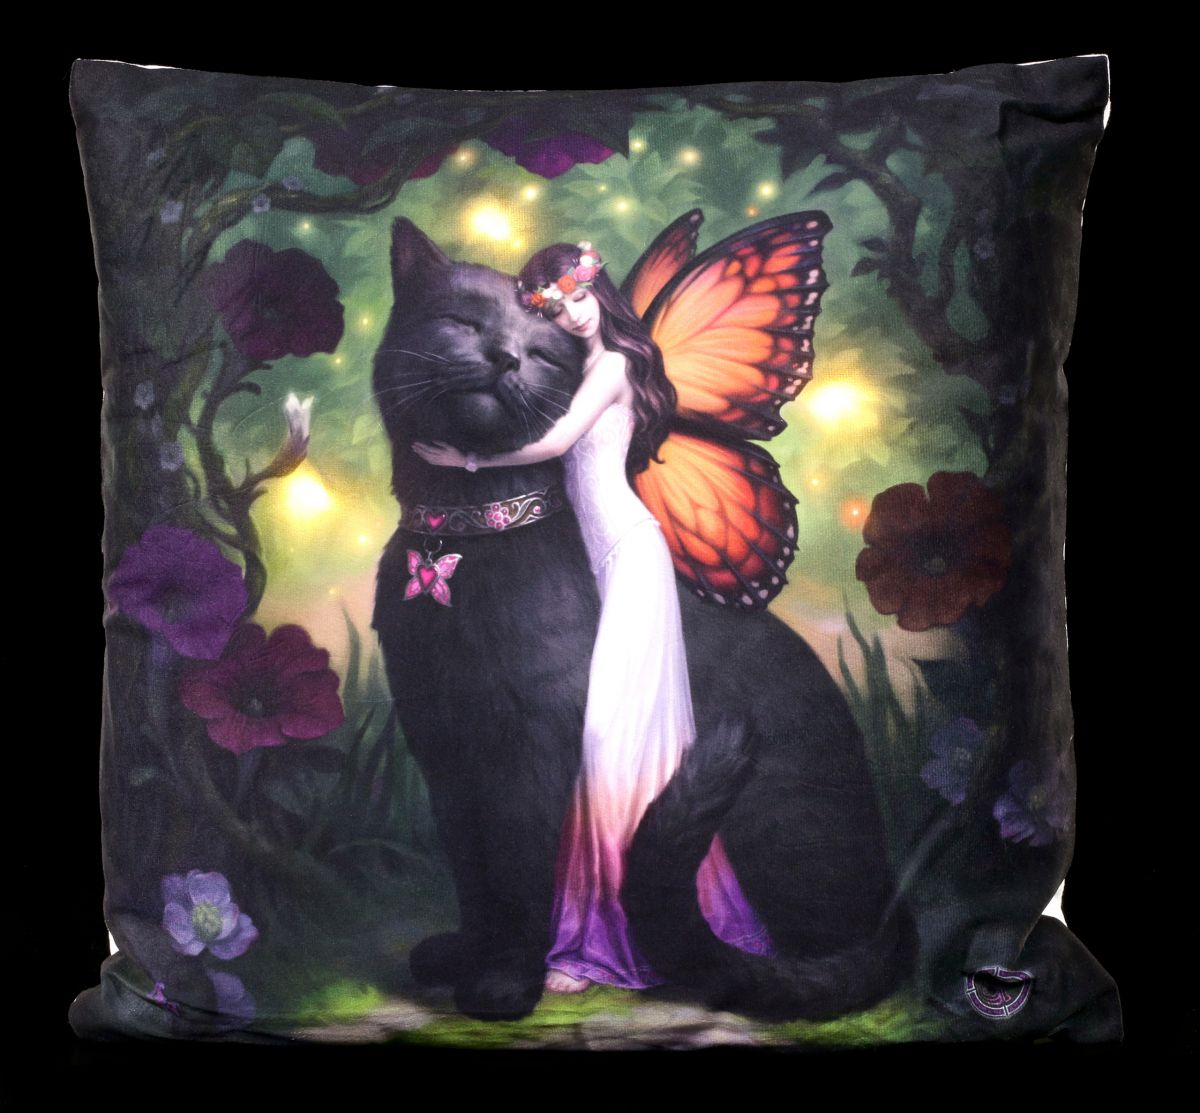 kissen mit katze und elfe cat fairy led beleuchtung zierkissen fantasy 801269118471 ebay. Black Bedroom Furniture Sets. Home Design Ideas